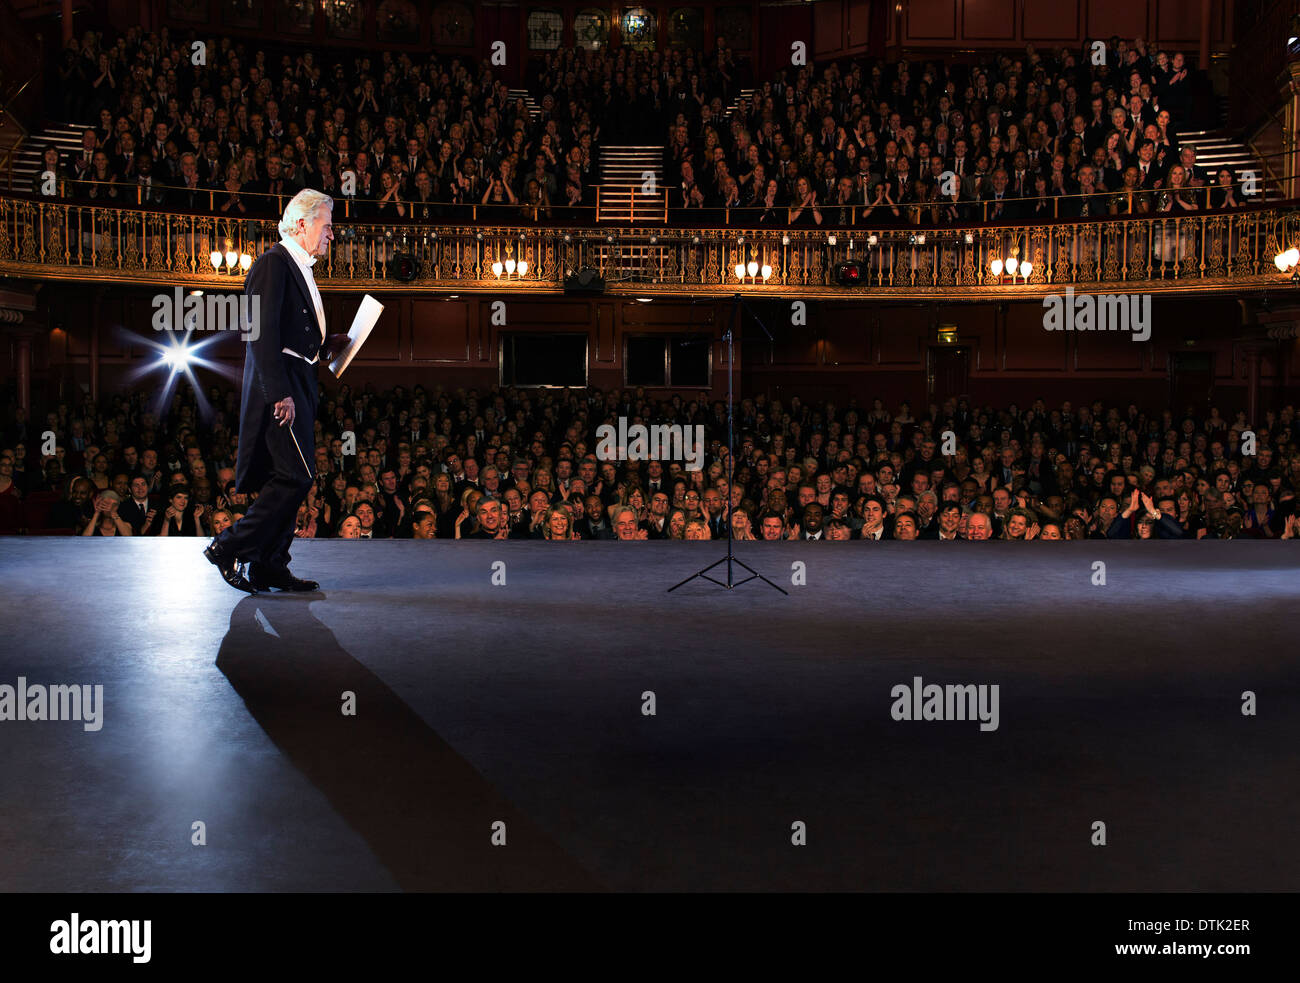 Conductor walking onto stage in theater - Stock Image